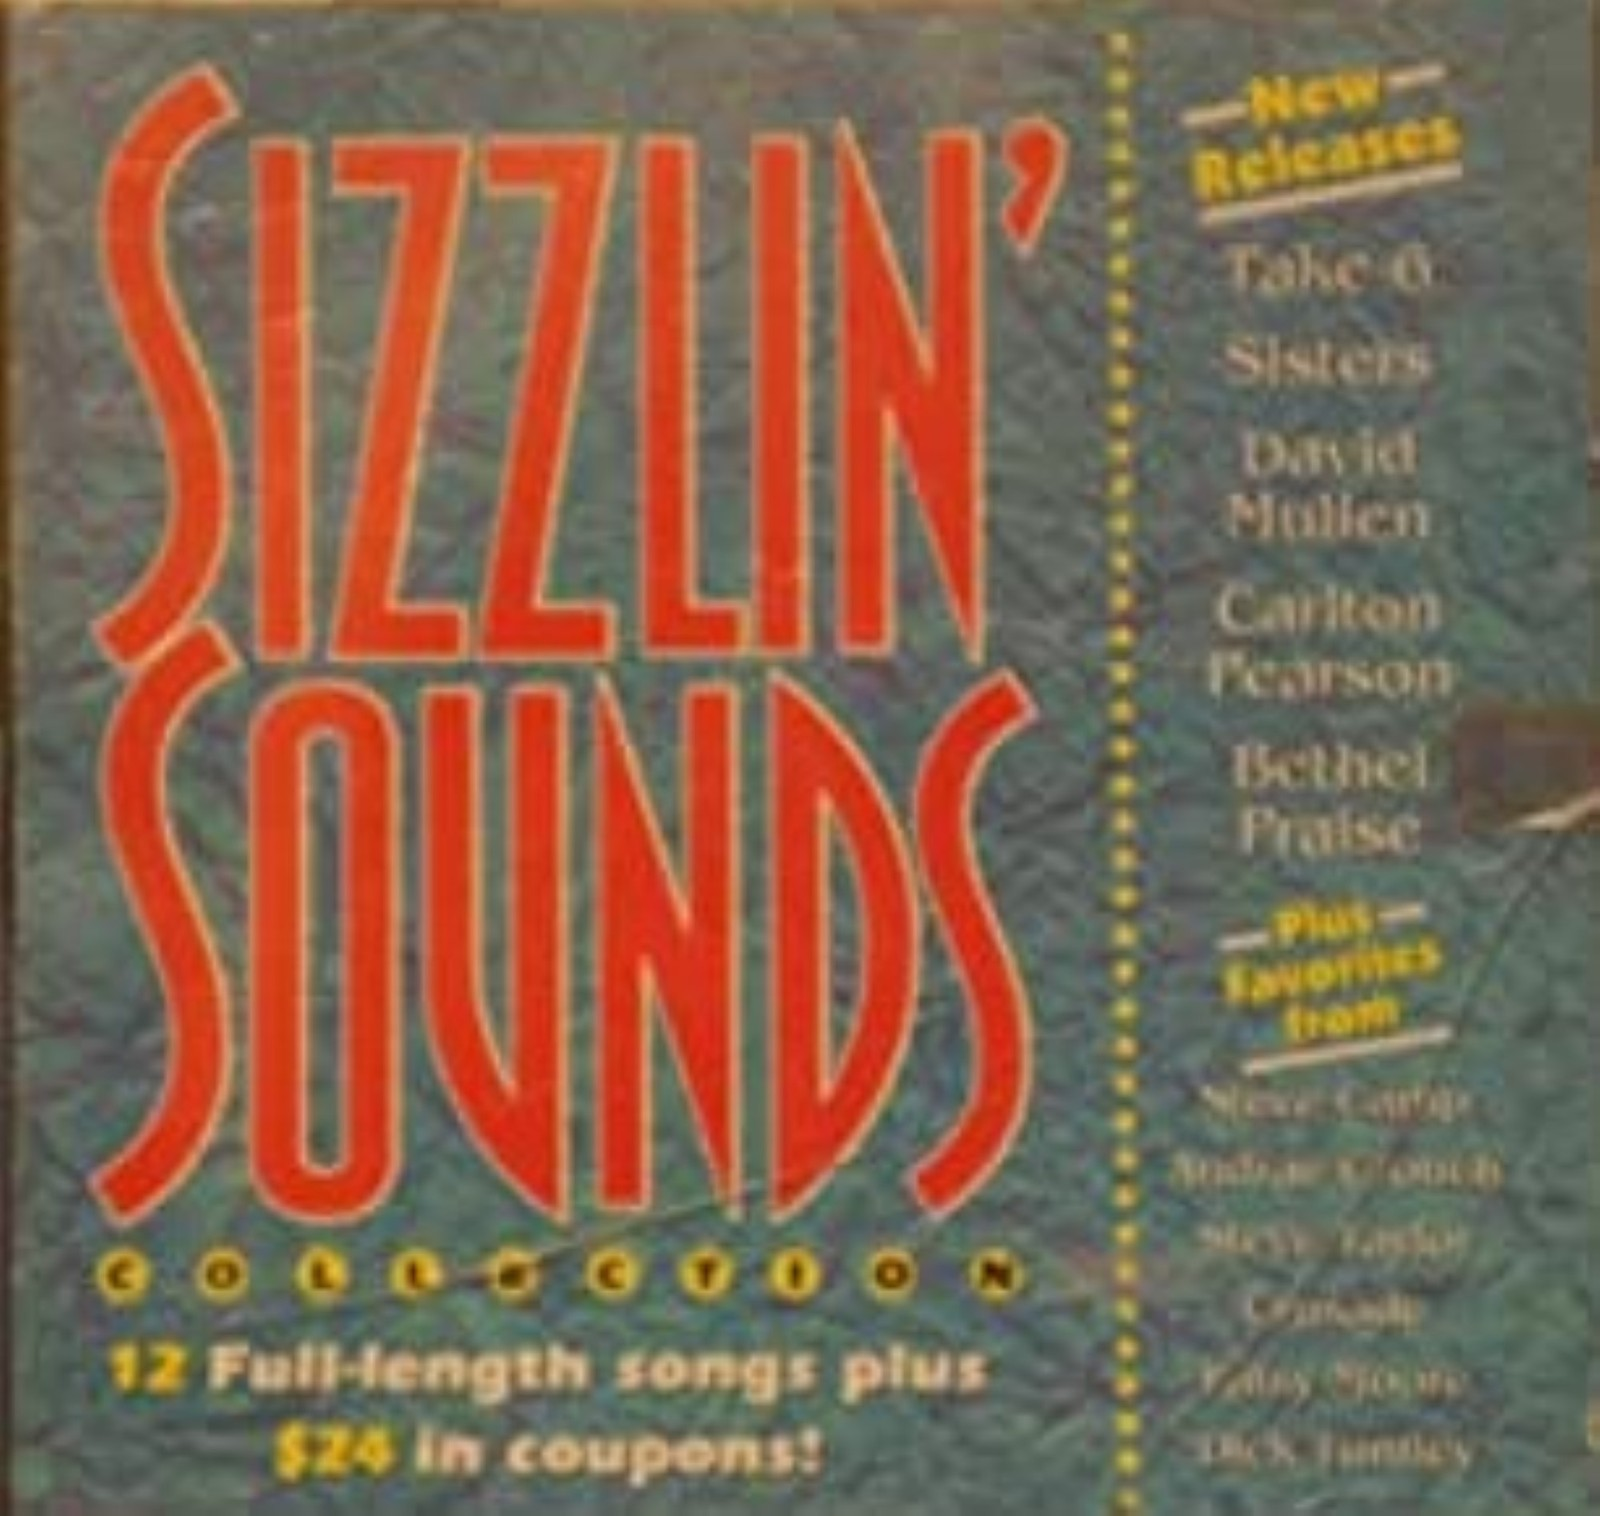 Sizzlin Sounds Collection cd